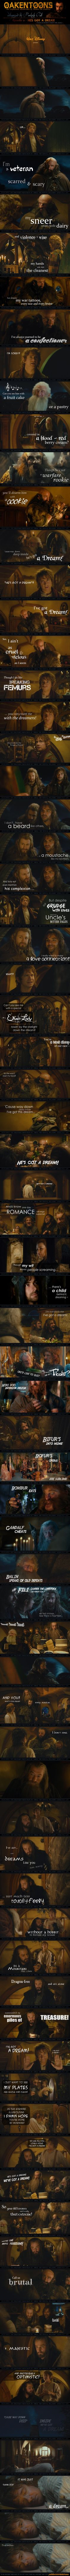 The Hobbit meets Disney's Tangled. He's got a dream!